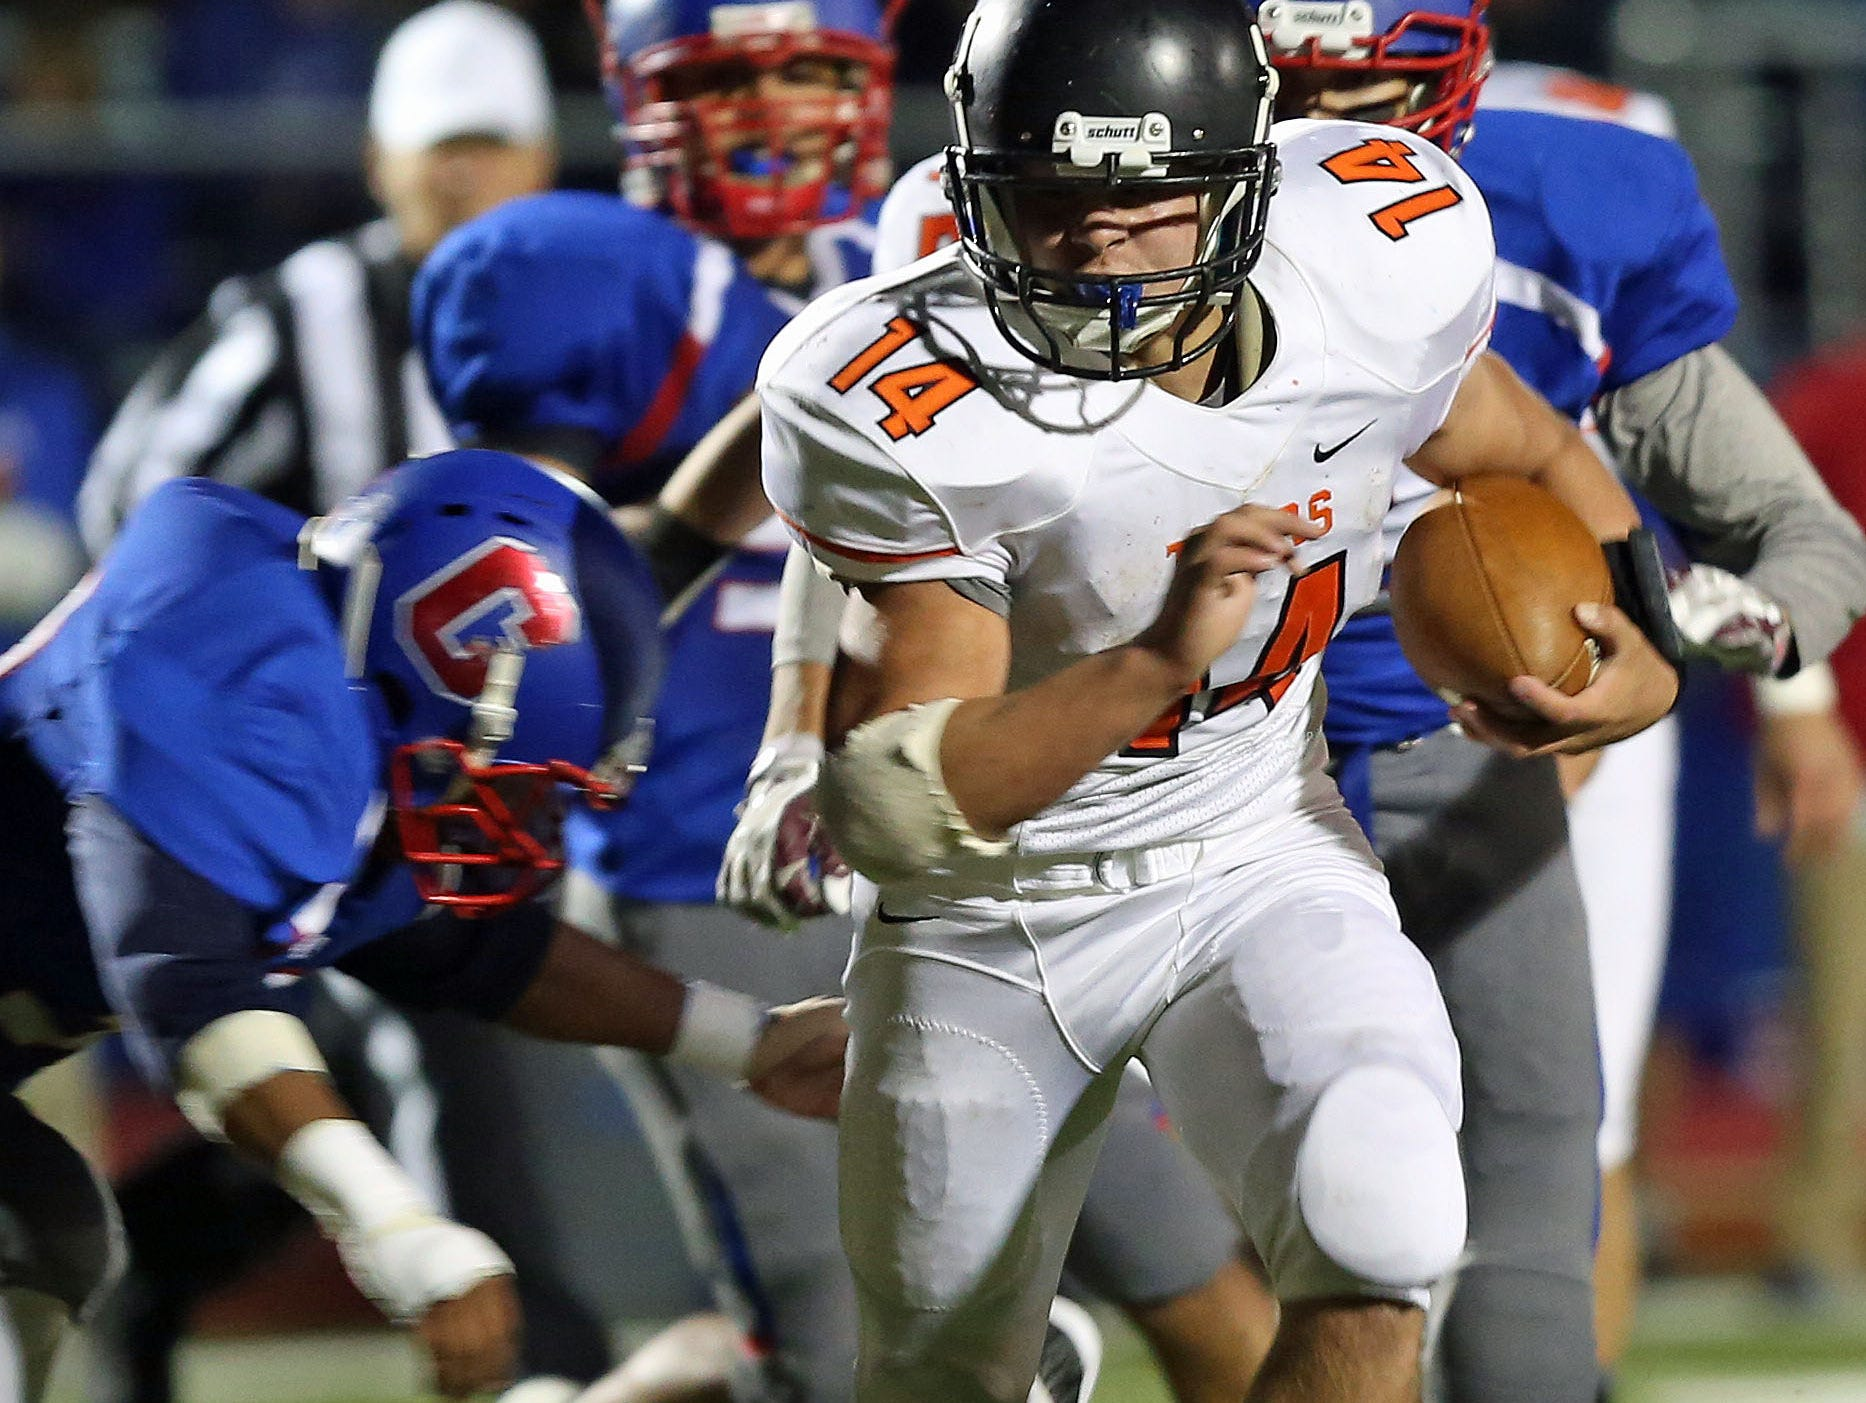 Mamaroneck's Daniel O'Rourke (14) finds some running room in the Carmel defense after a first half catch and run during a boys football playoff game at Carmel High School Oct. 16, 2015.